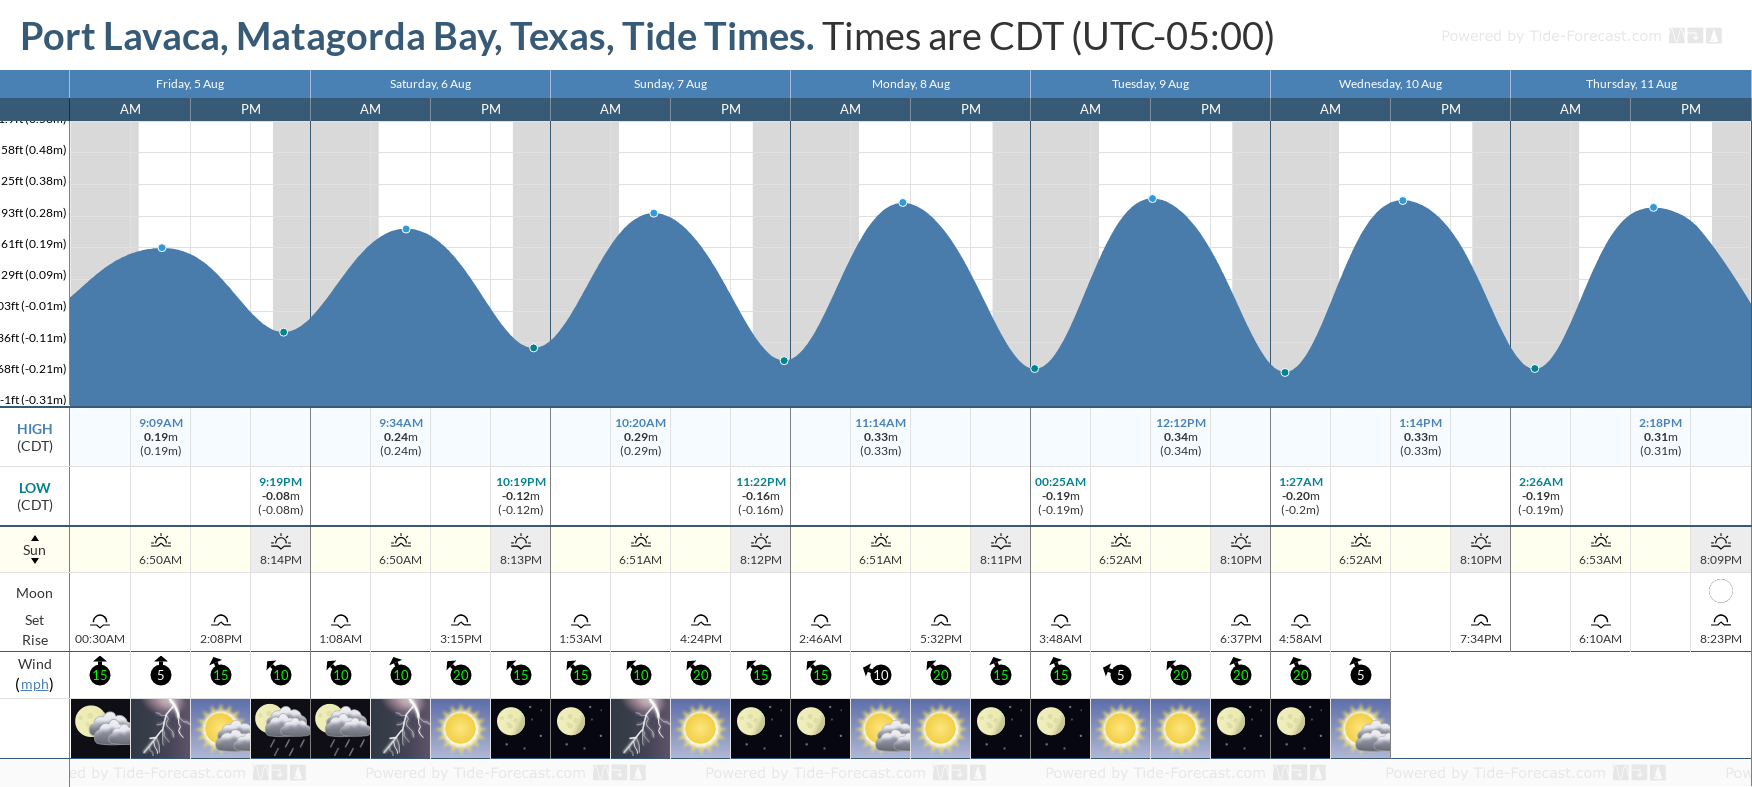 Port Lavaca, Matagorda Bay, Texas Tide Chart including high and low tide tide times for the next 7 days